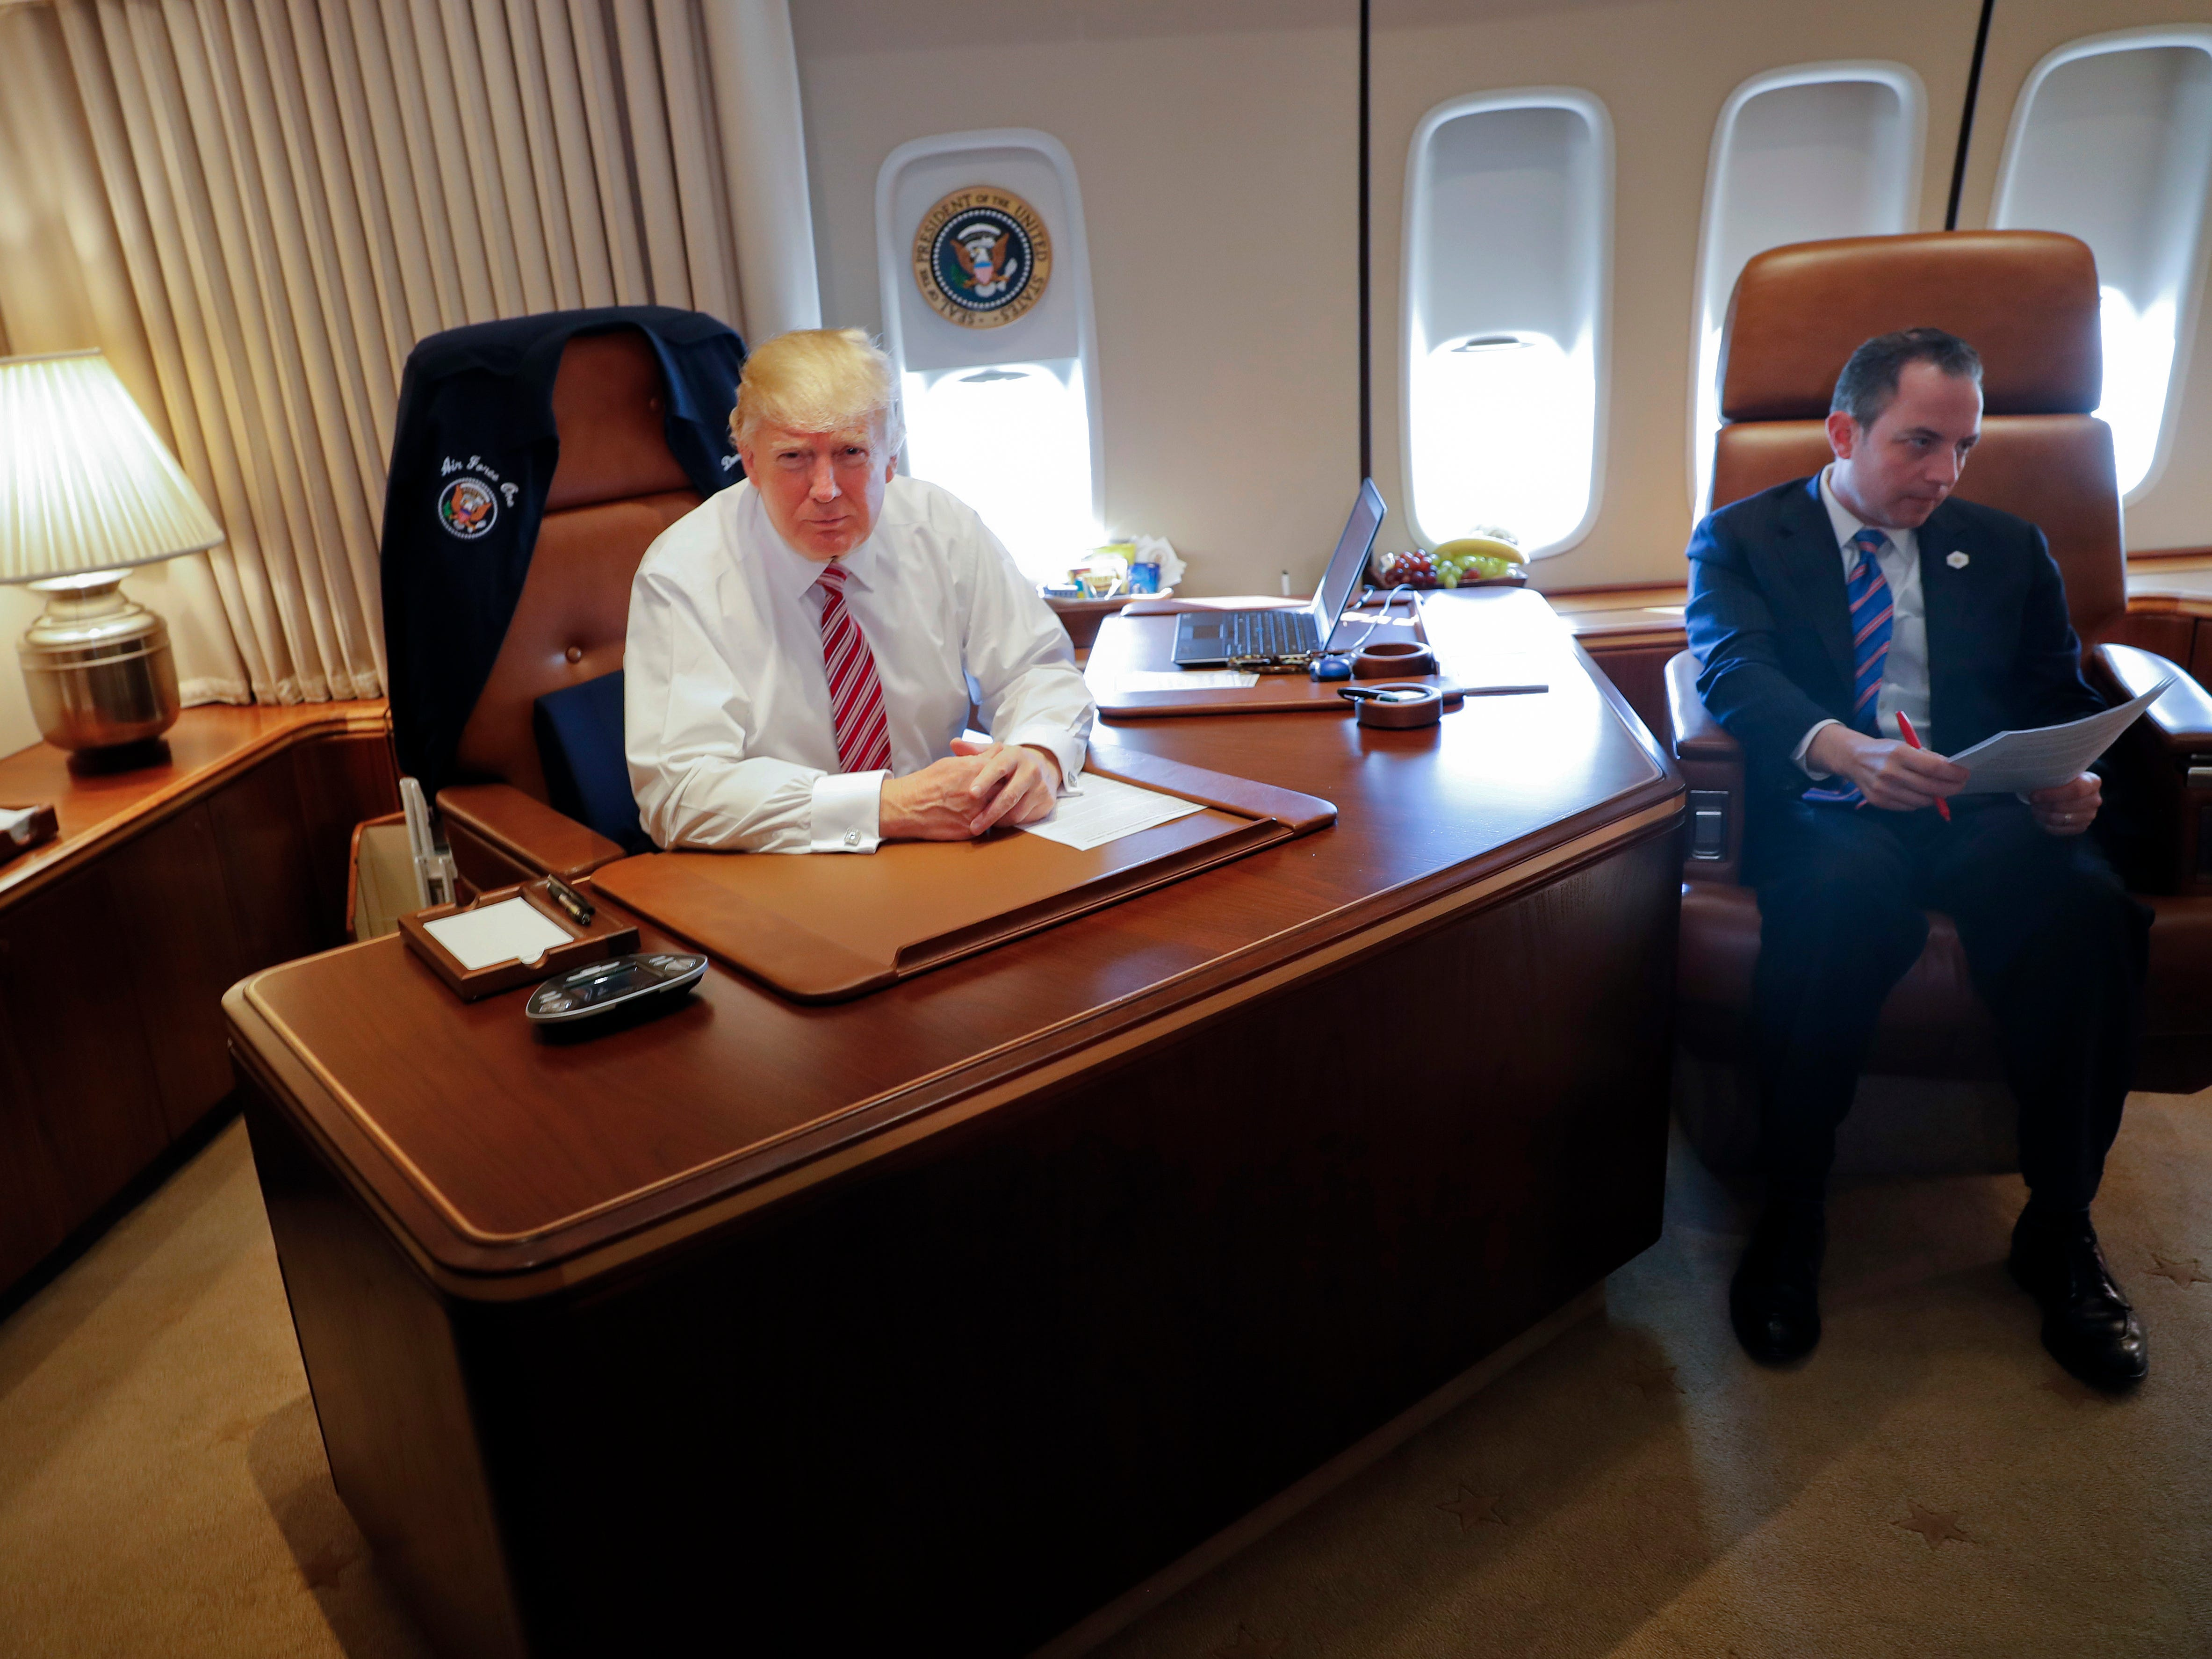 President Donald Trump, with his Chief of Staff Reince Priebus, sits at his desk on Air Force One upon their arrival at Andrews Air Force Base, Md.